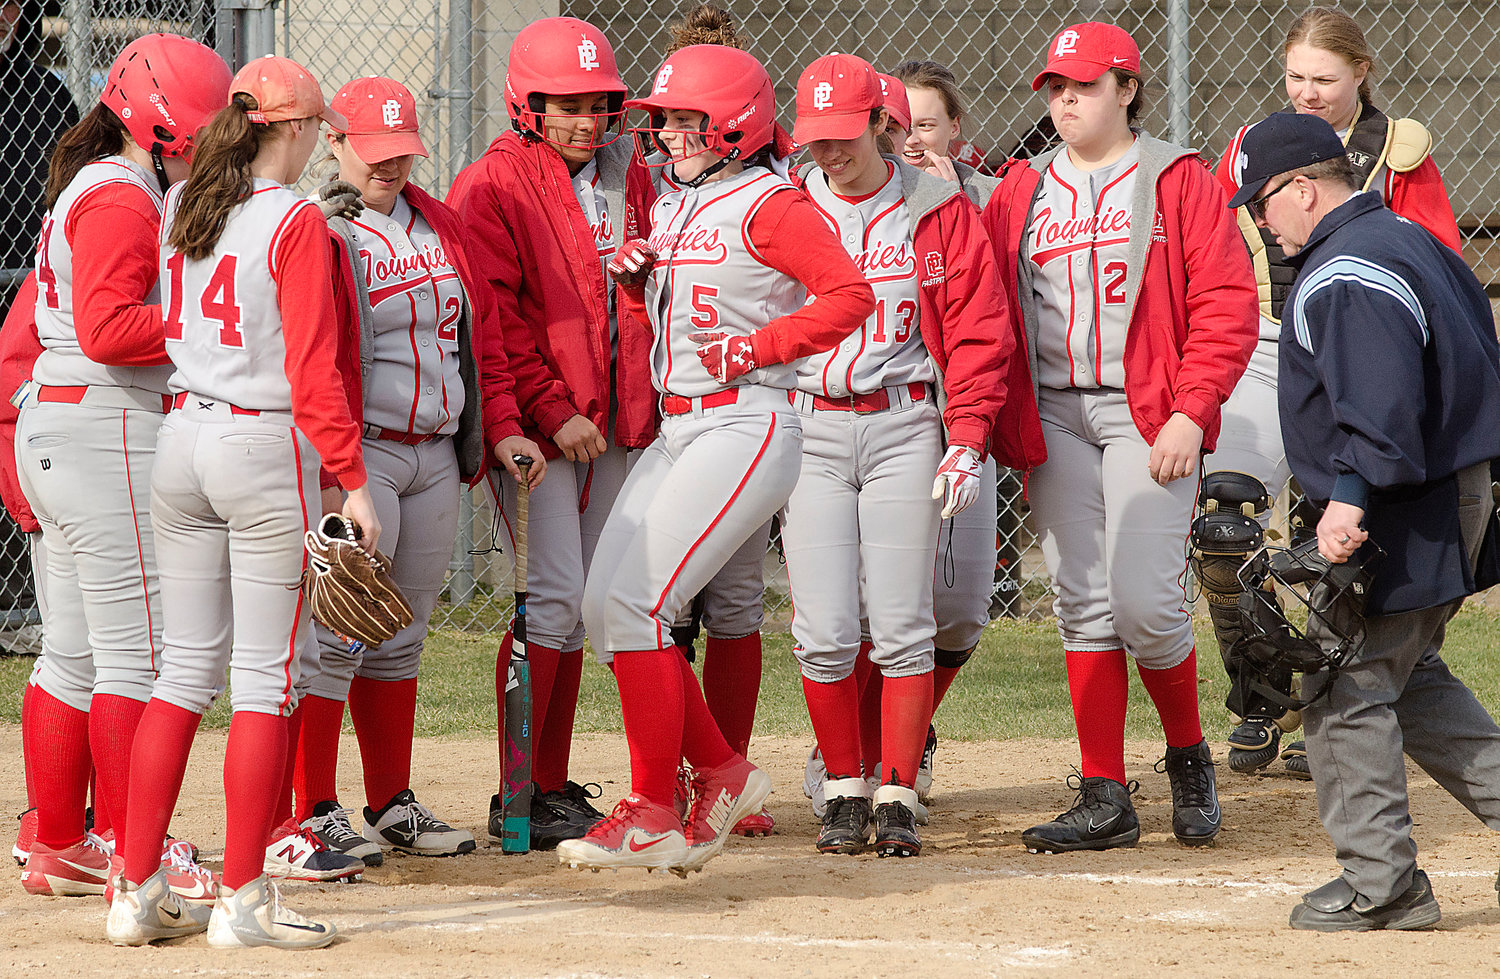 The East Providence High School softball team, like all its spring sports brethren, are waiting out the COVID-19 crisis in hopes of actually conducting a 2020 season.